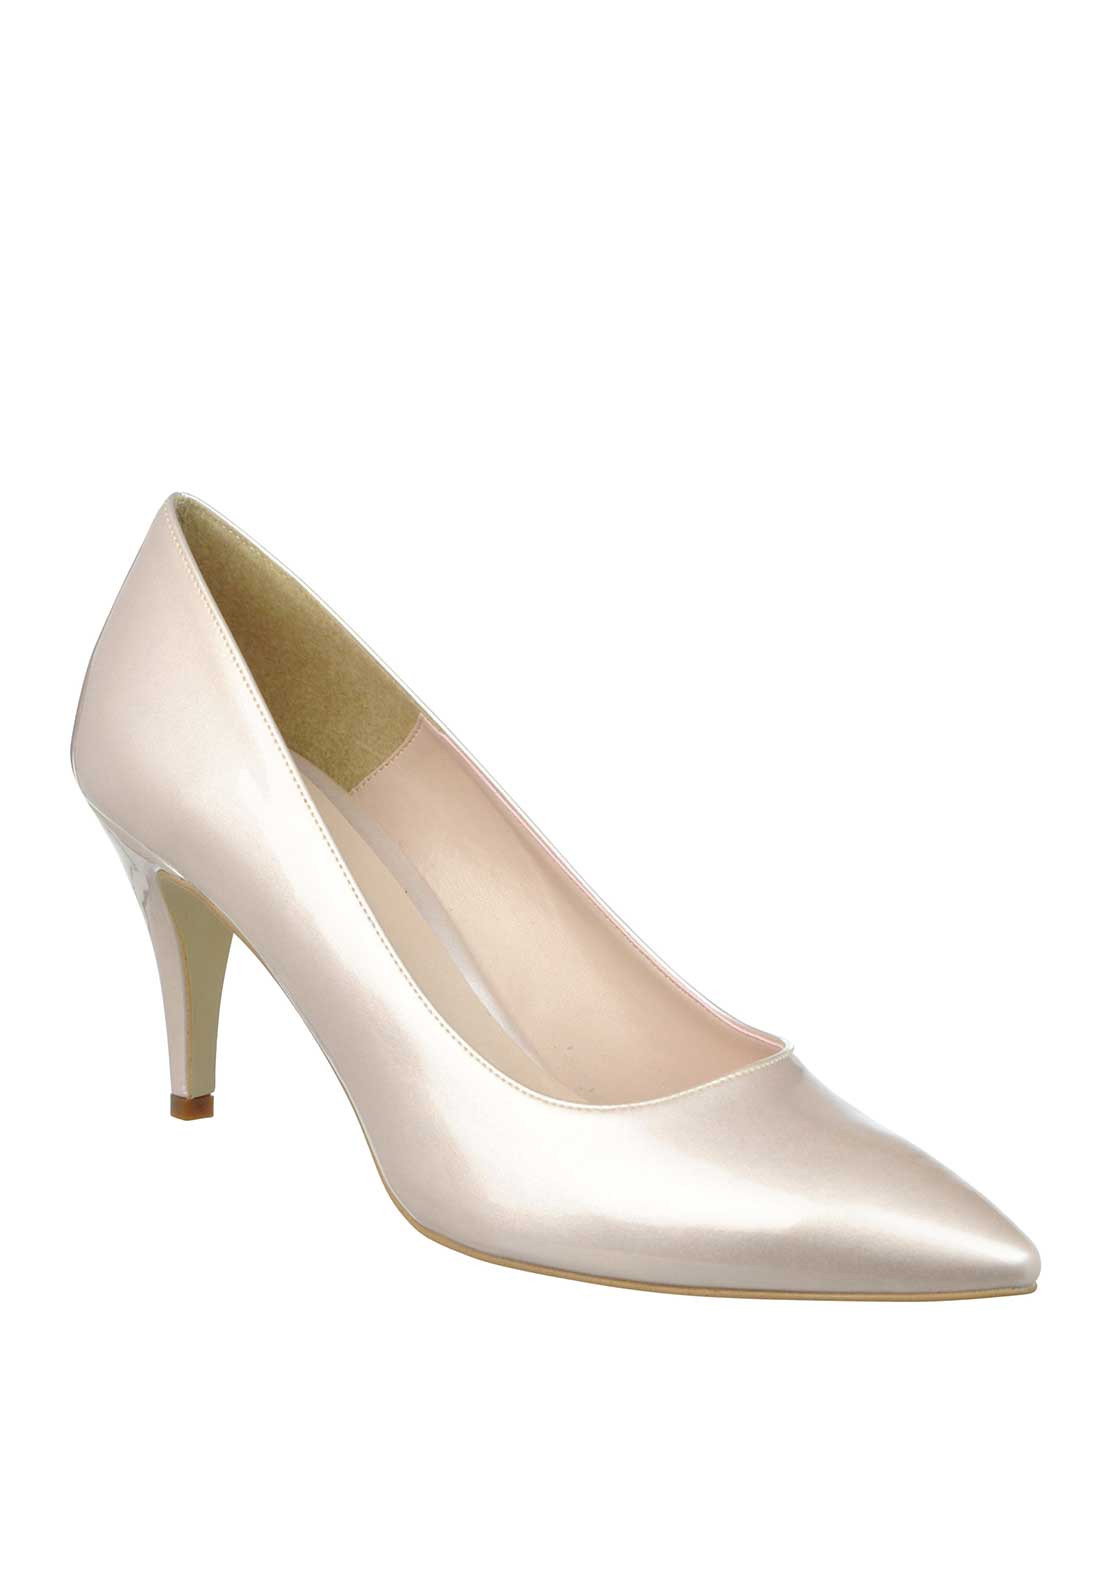 McElhinney's Patent Pointed Toe Low Heeled Shoes, Champagne